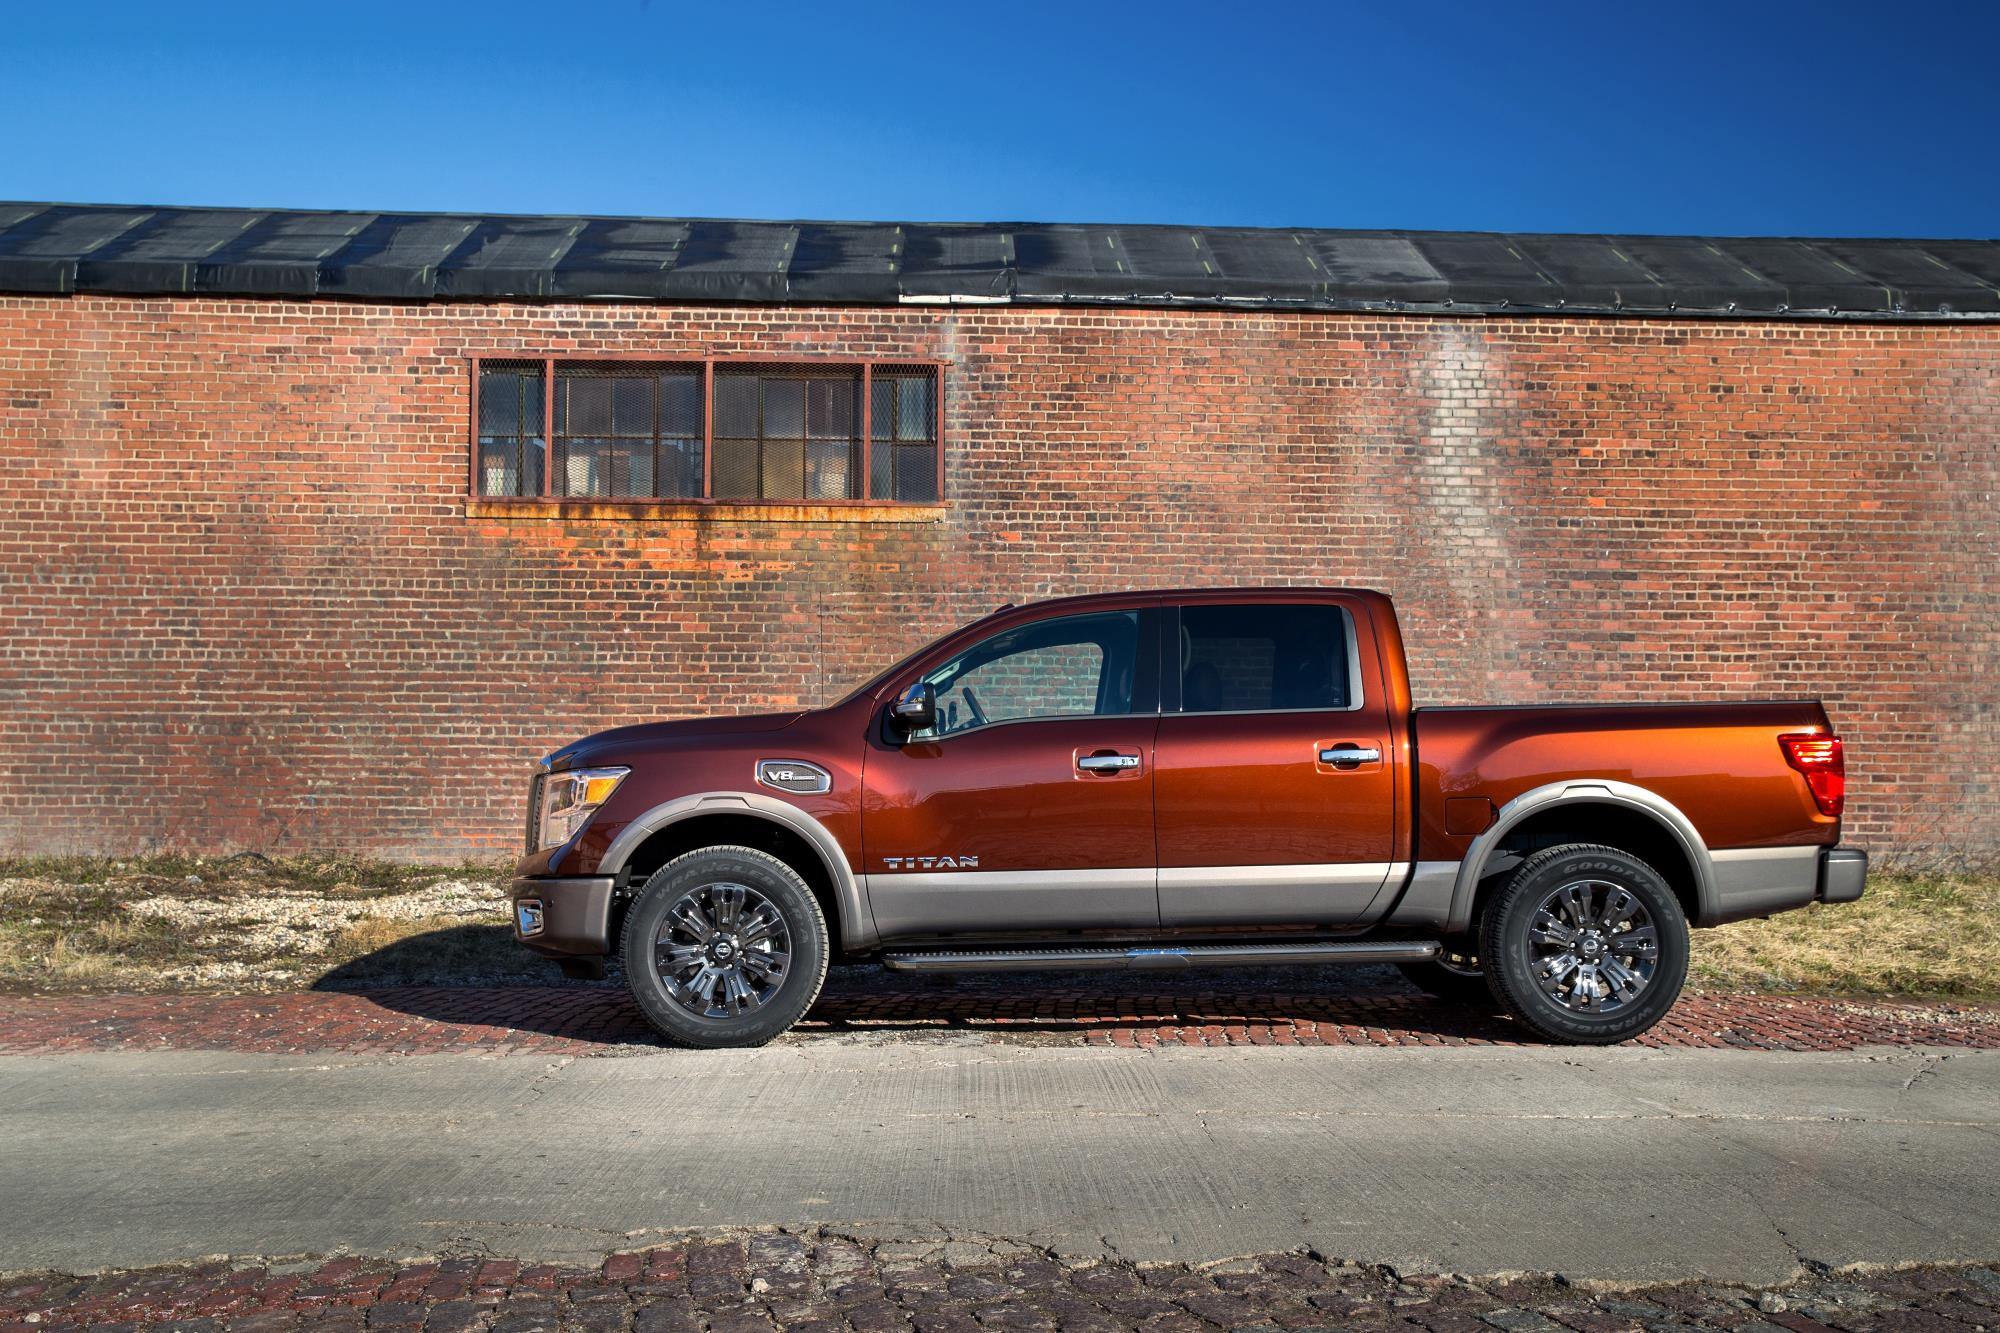 2016 nissan titan xd 5 6 v8 price announced 2017 nissan titan unveiled in ny autoevolution. Black Bedroom Furniture Sets. Home Design Ideas